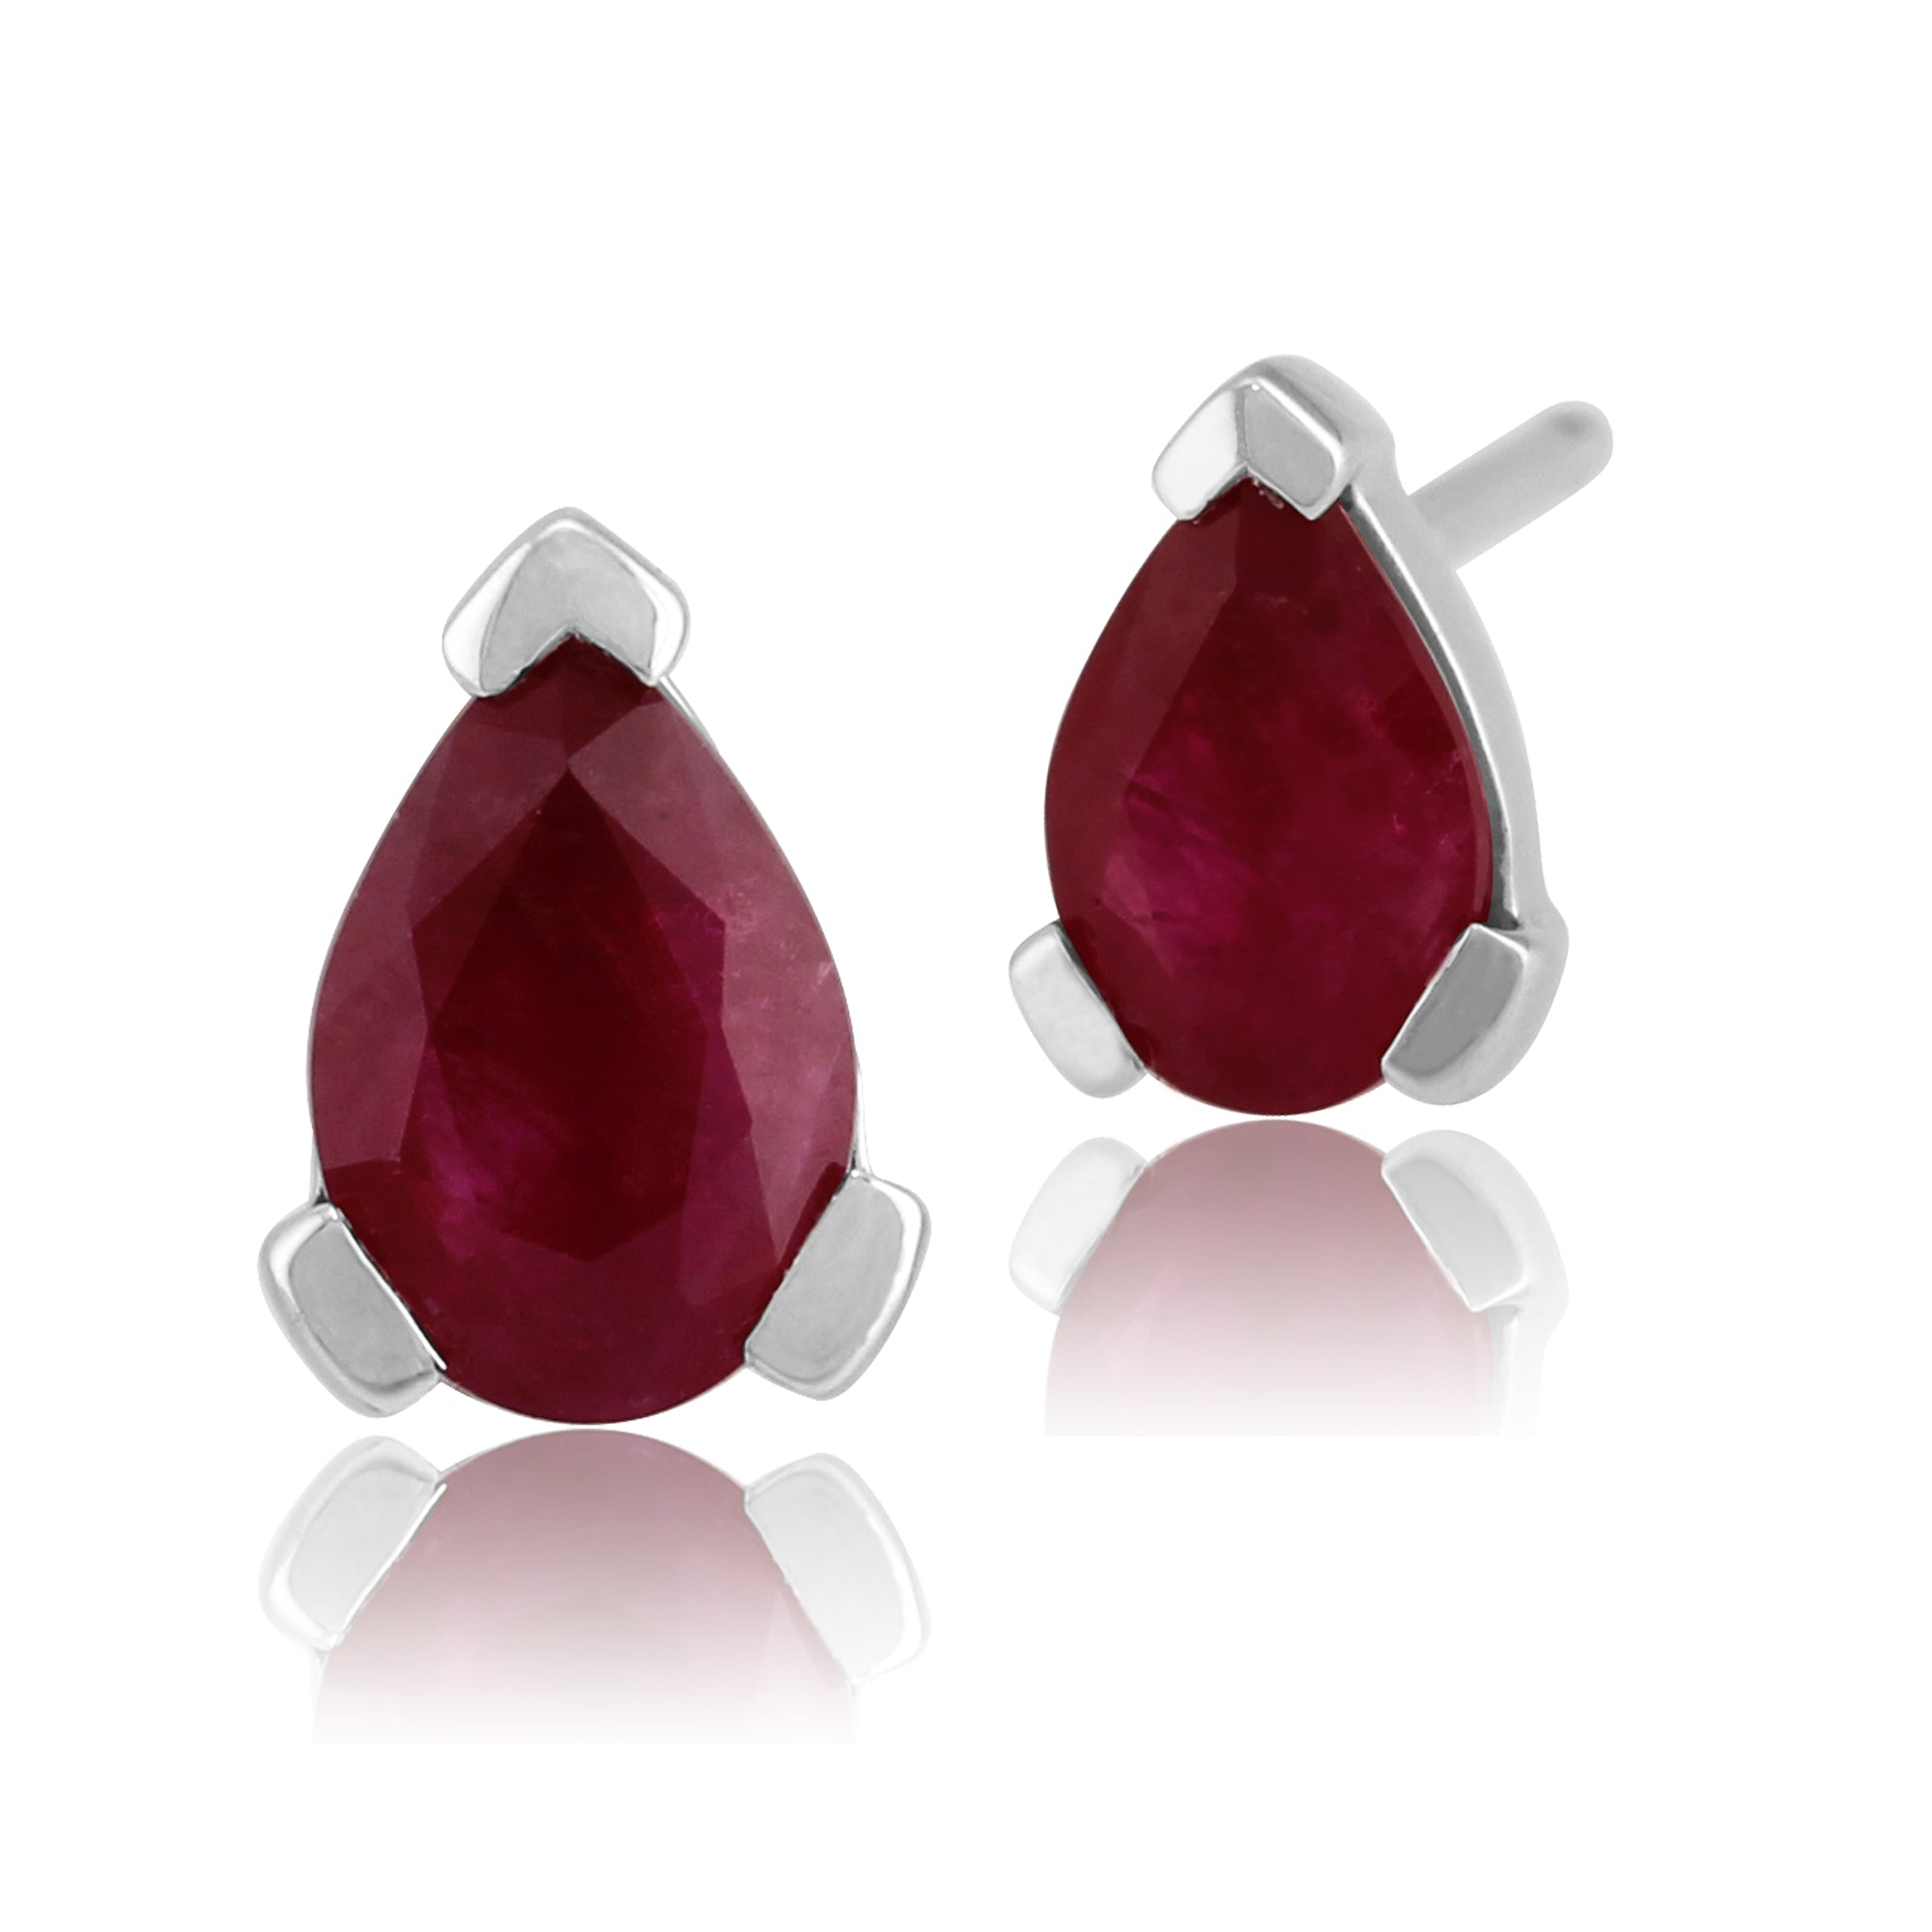 Gemondo 9ct White Gold 0.88ct Genuine Ruby 3 Claw Set Pear Stud Earrings 6.5x4mm